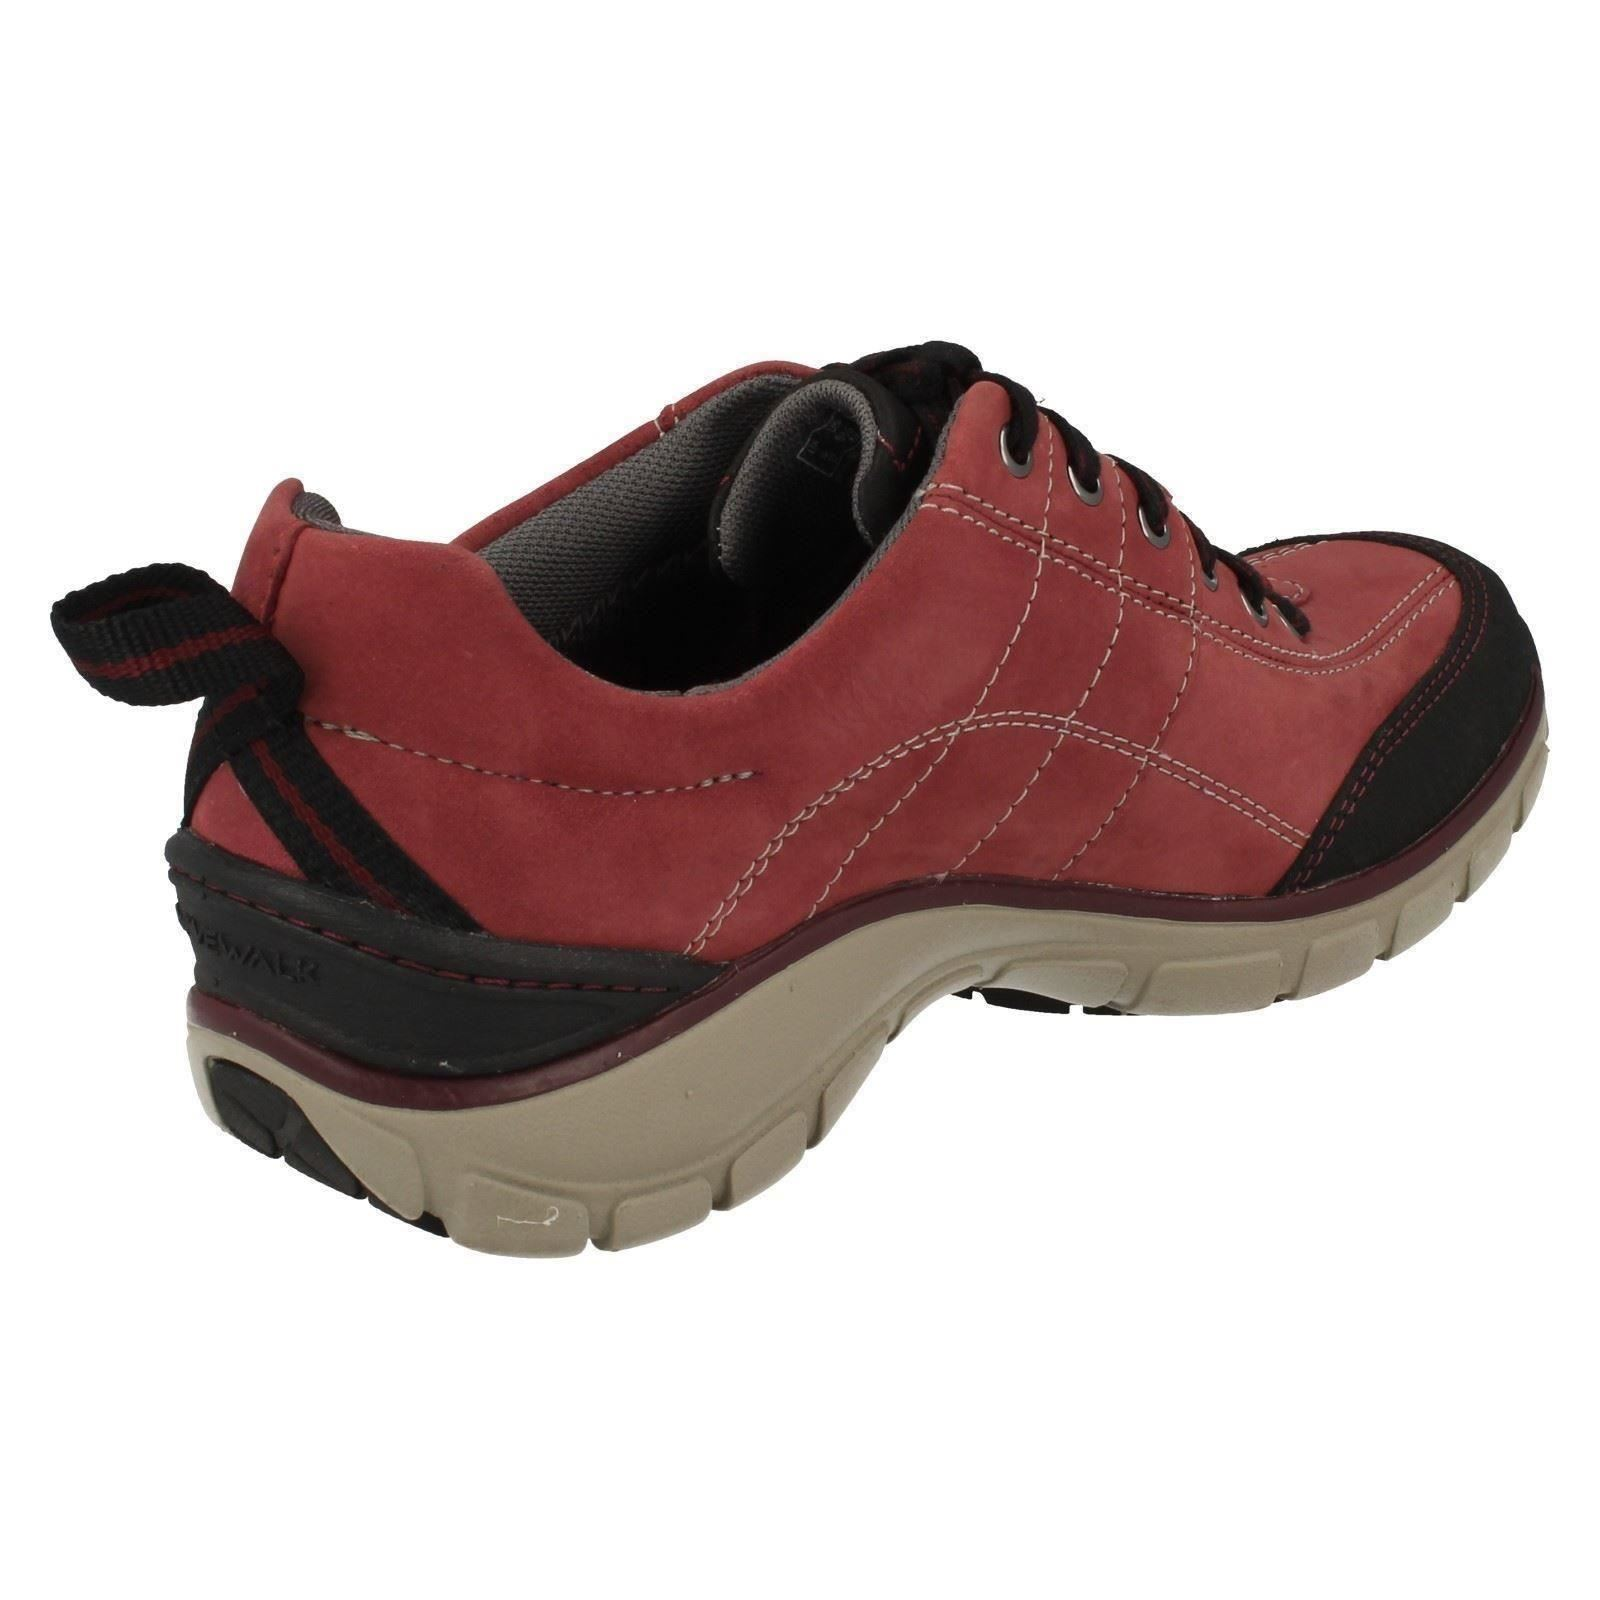 Clarks Sports Shoes Ladies